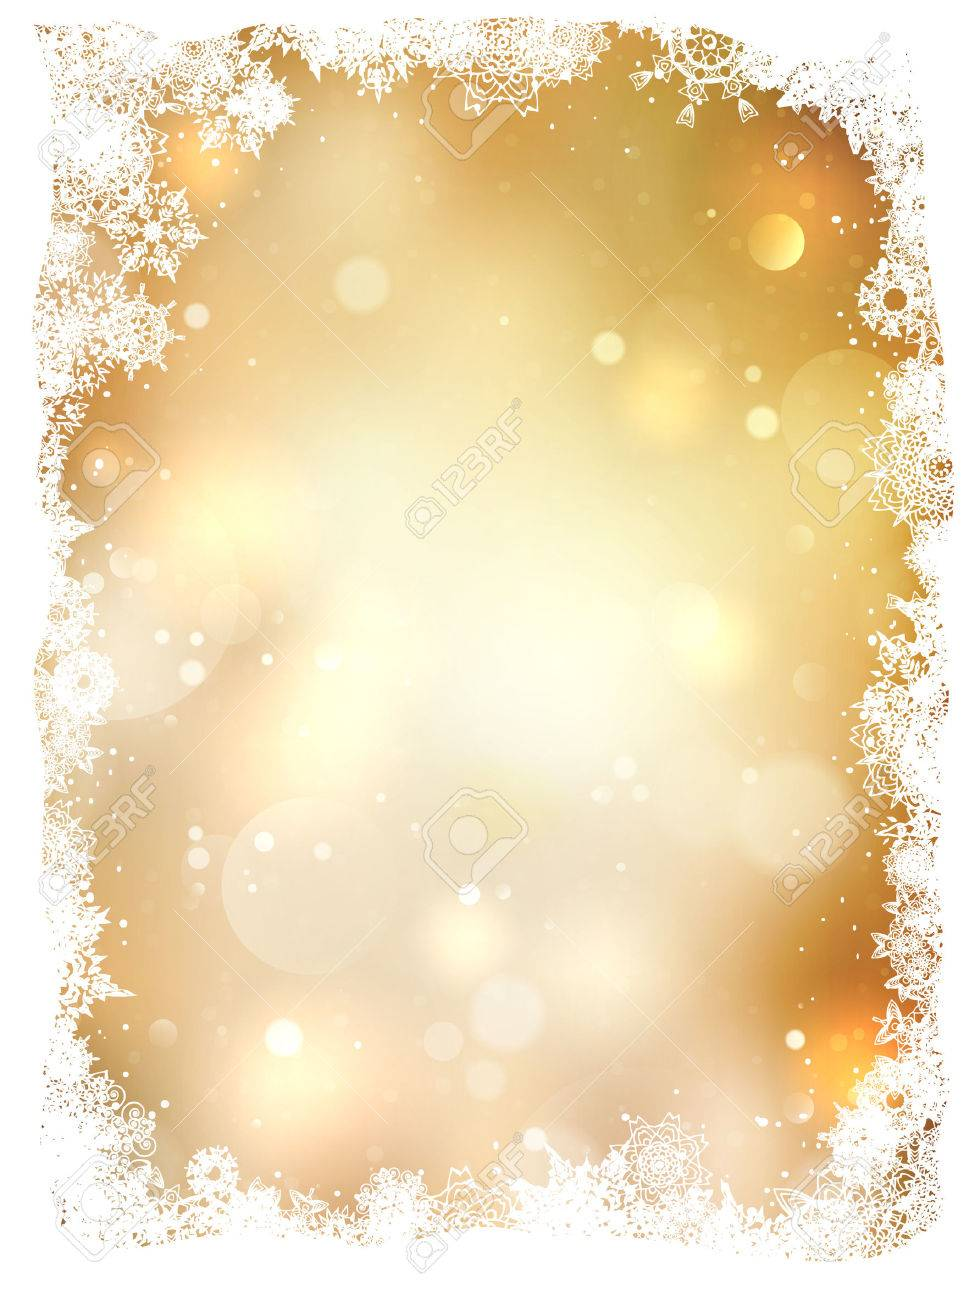 Abstract christmas background. - 47563065